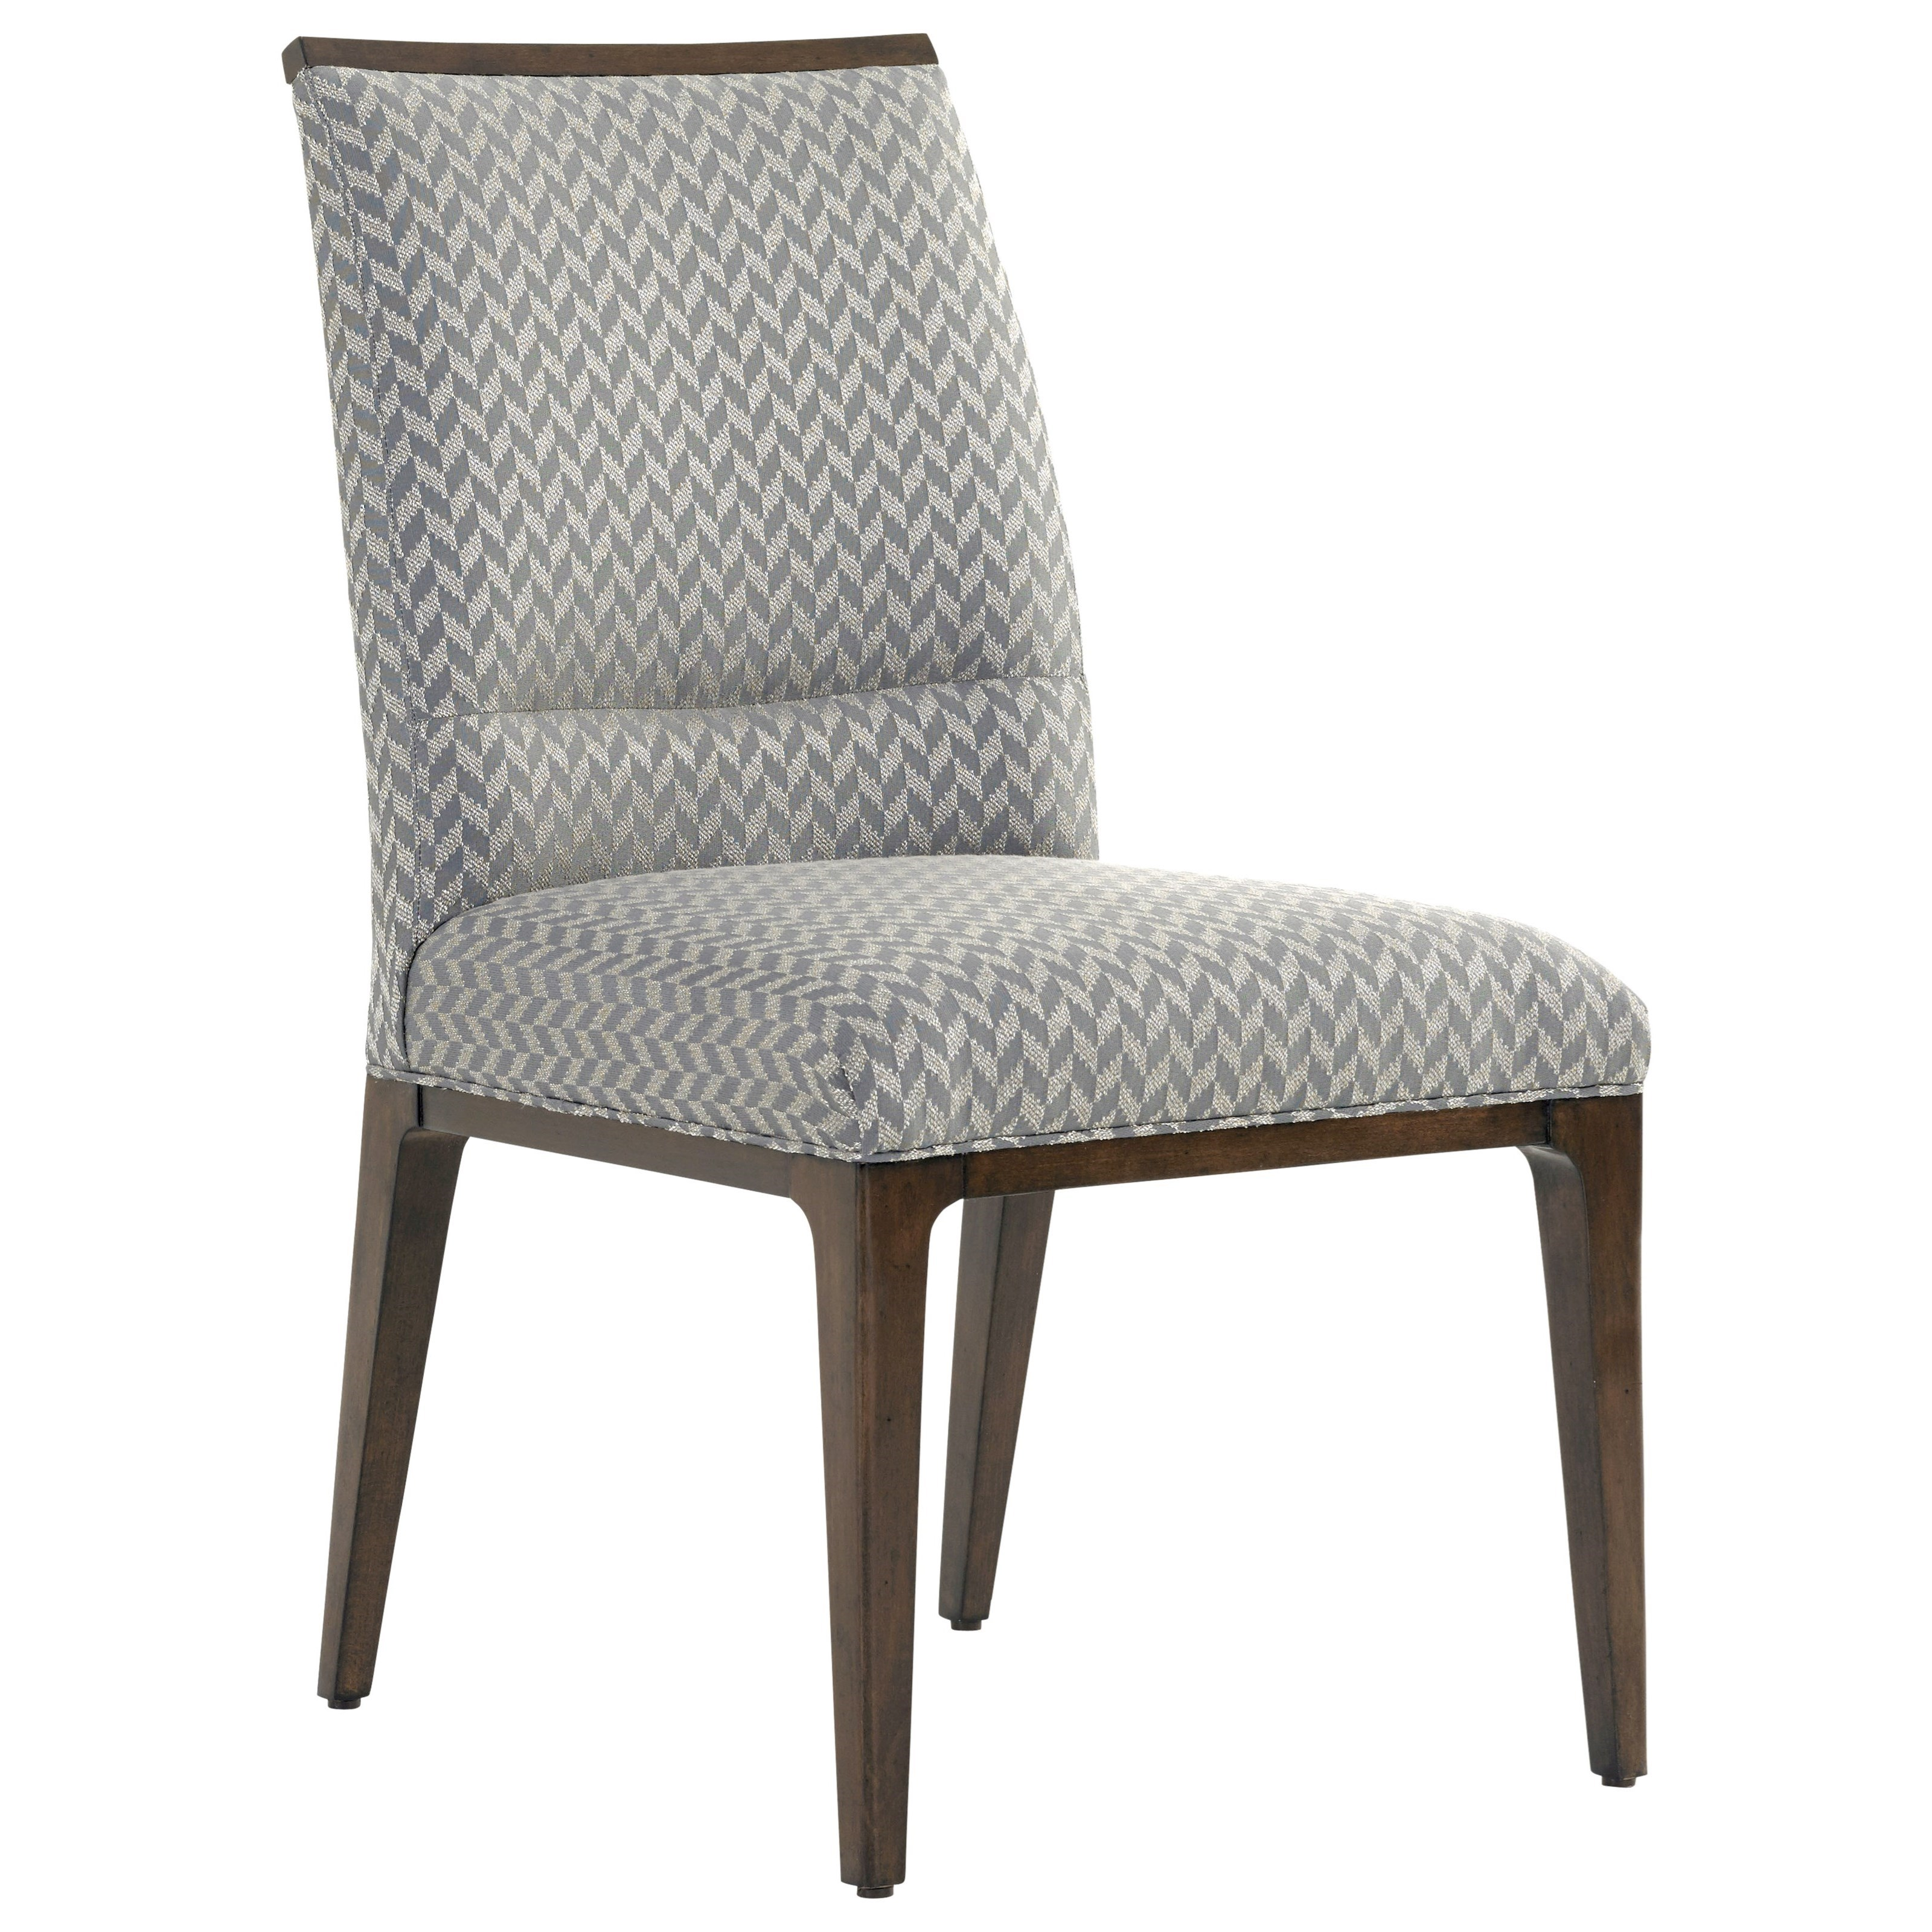 lexington dining chairs desk chair locking wheels macarthur park collina upholstered side in